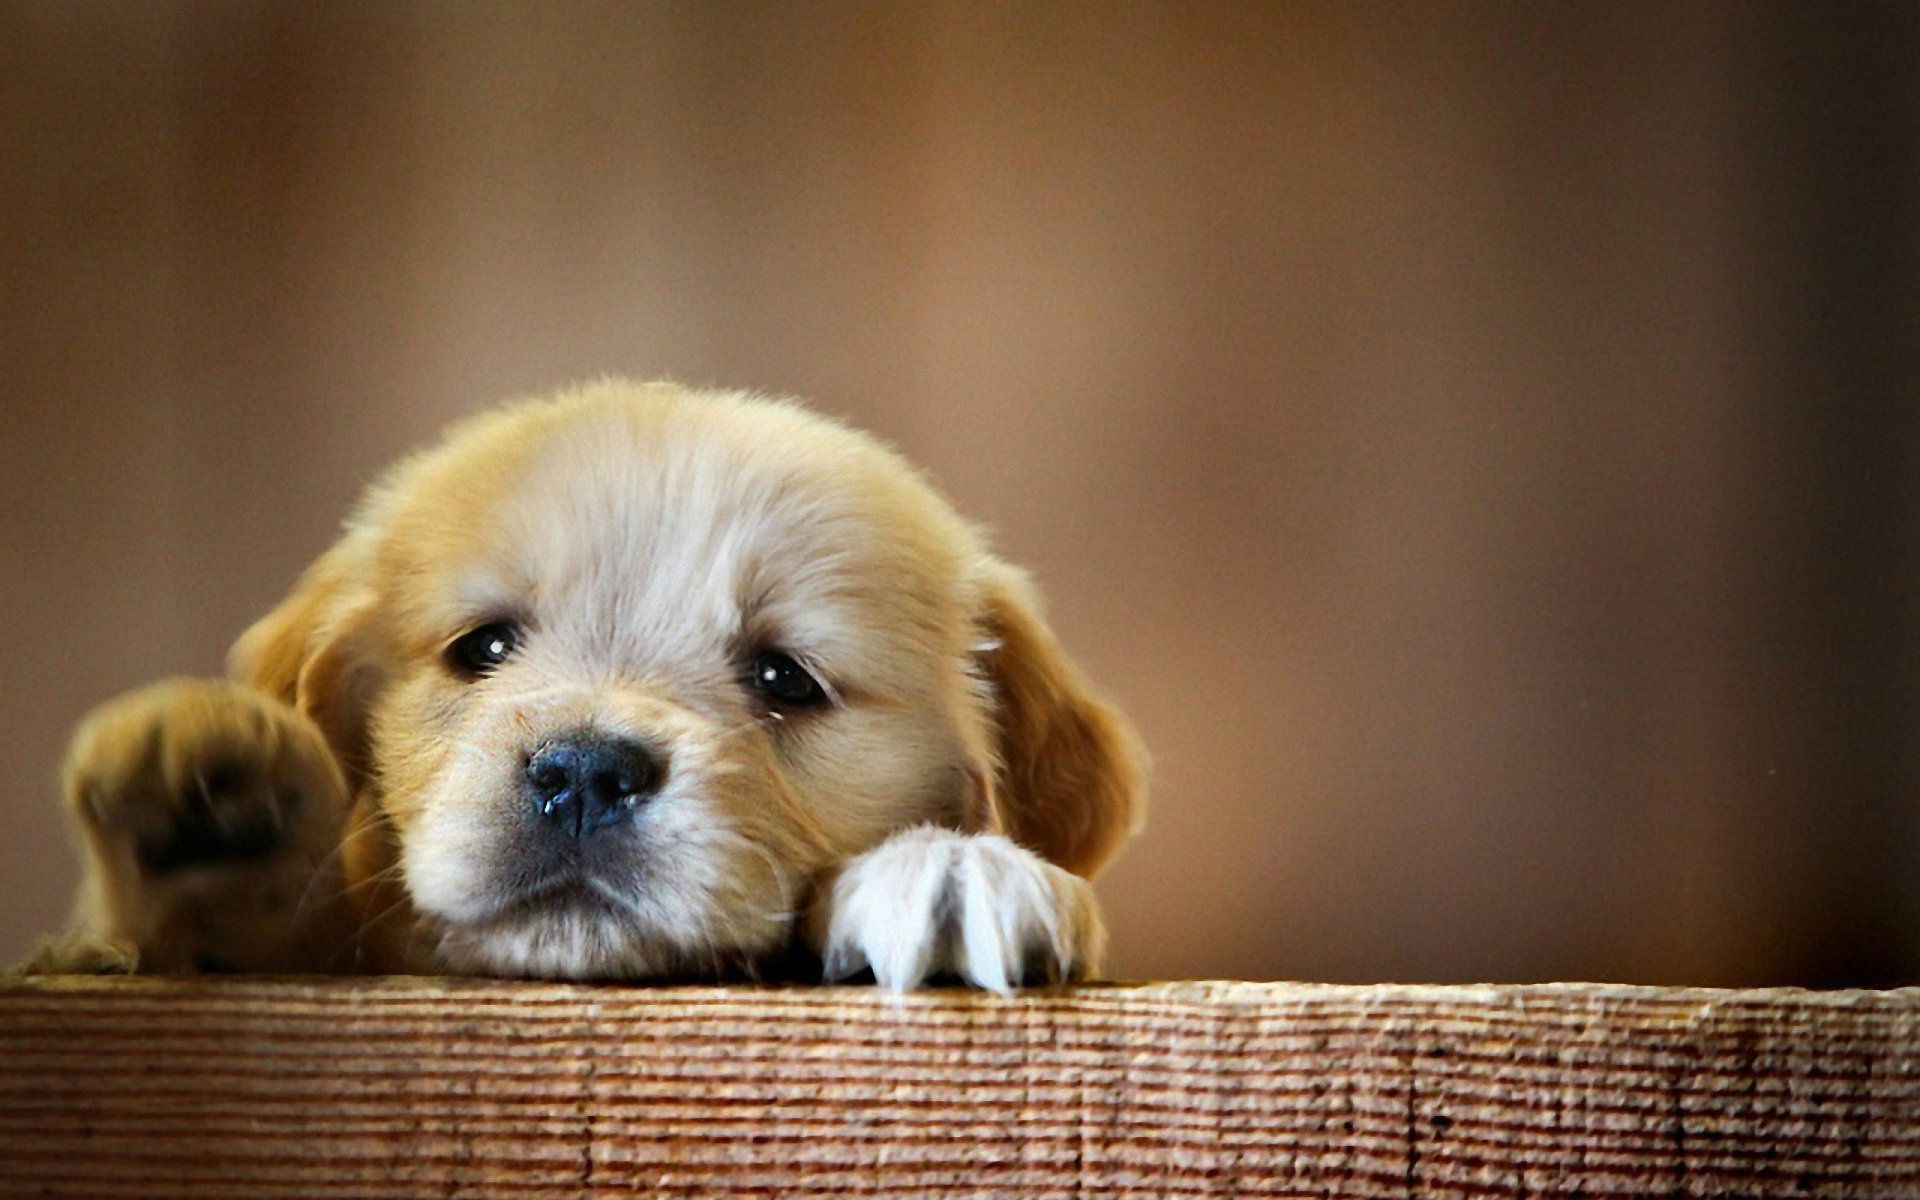 🐕 Cute Dog Wallpapers 🐩 Android Apps on Google Play